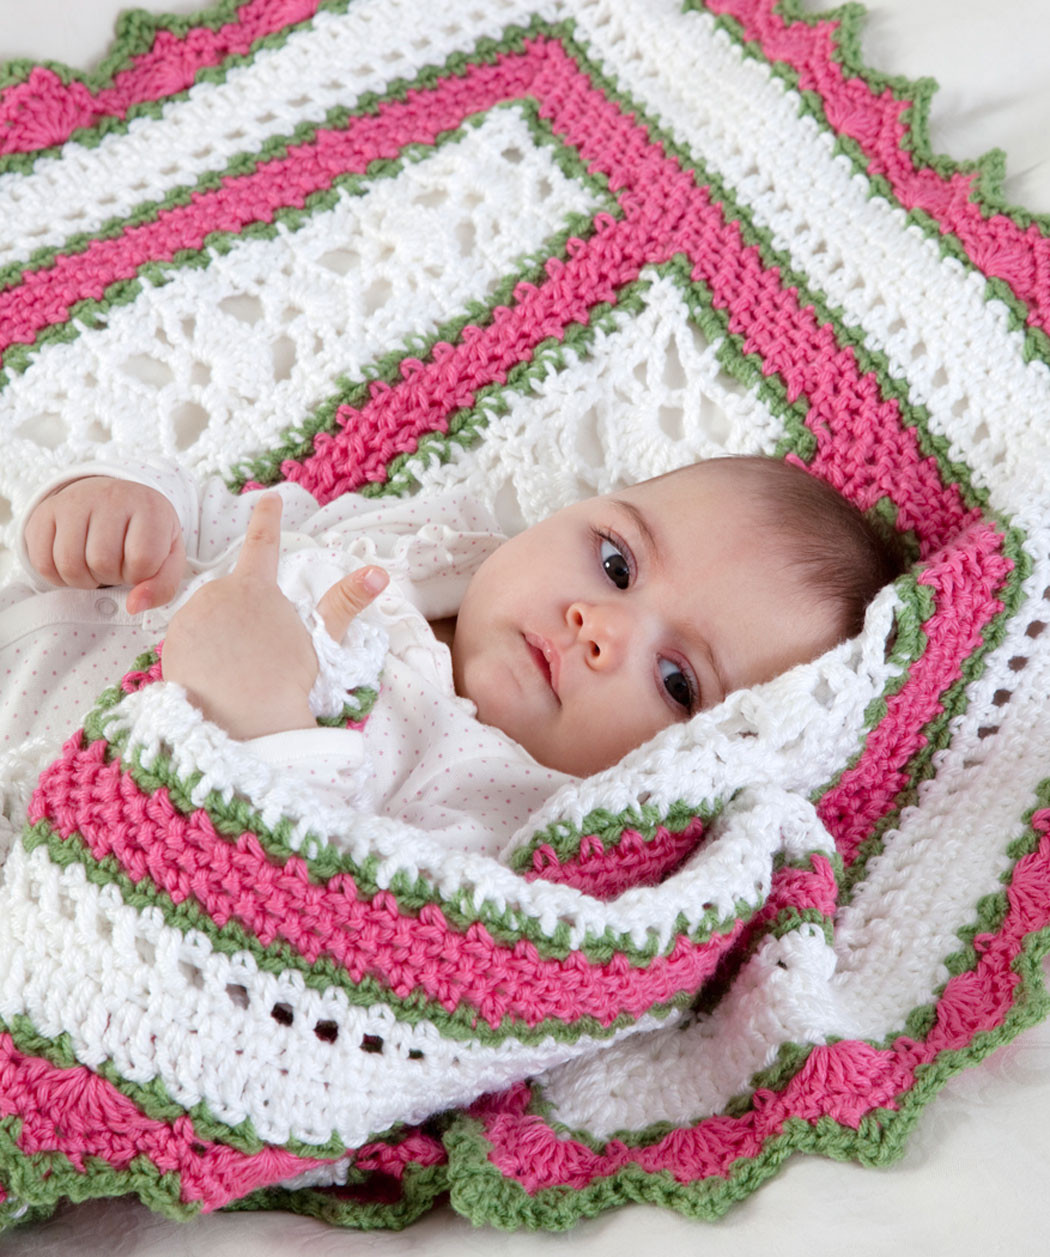 Crochet Patterns for Baby Blankets Awesome 10 Beautiful Baby Blanket Free Patterns Of Great 50 Photos Crochet Patterns for Baby Blankets